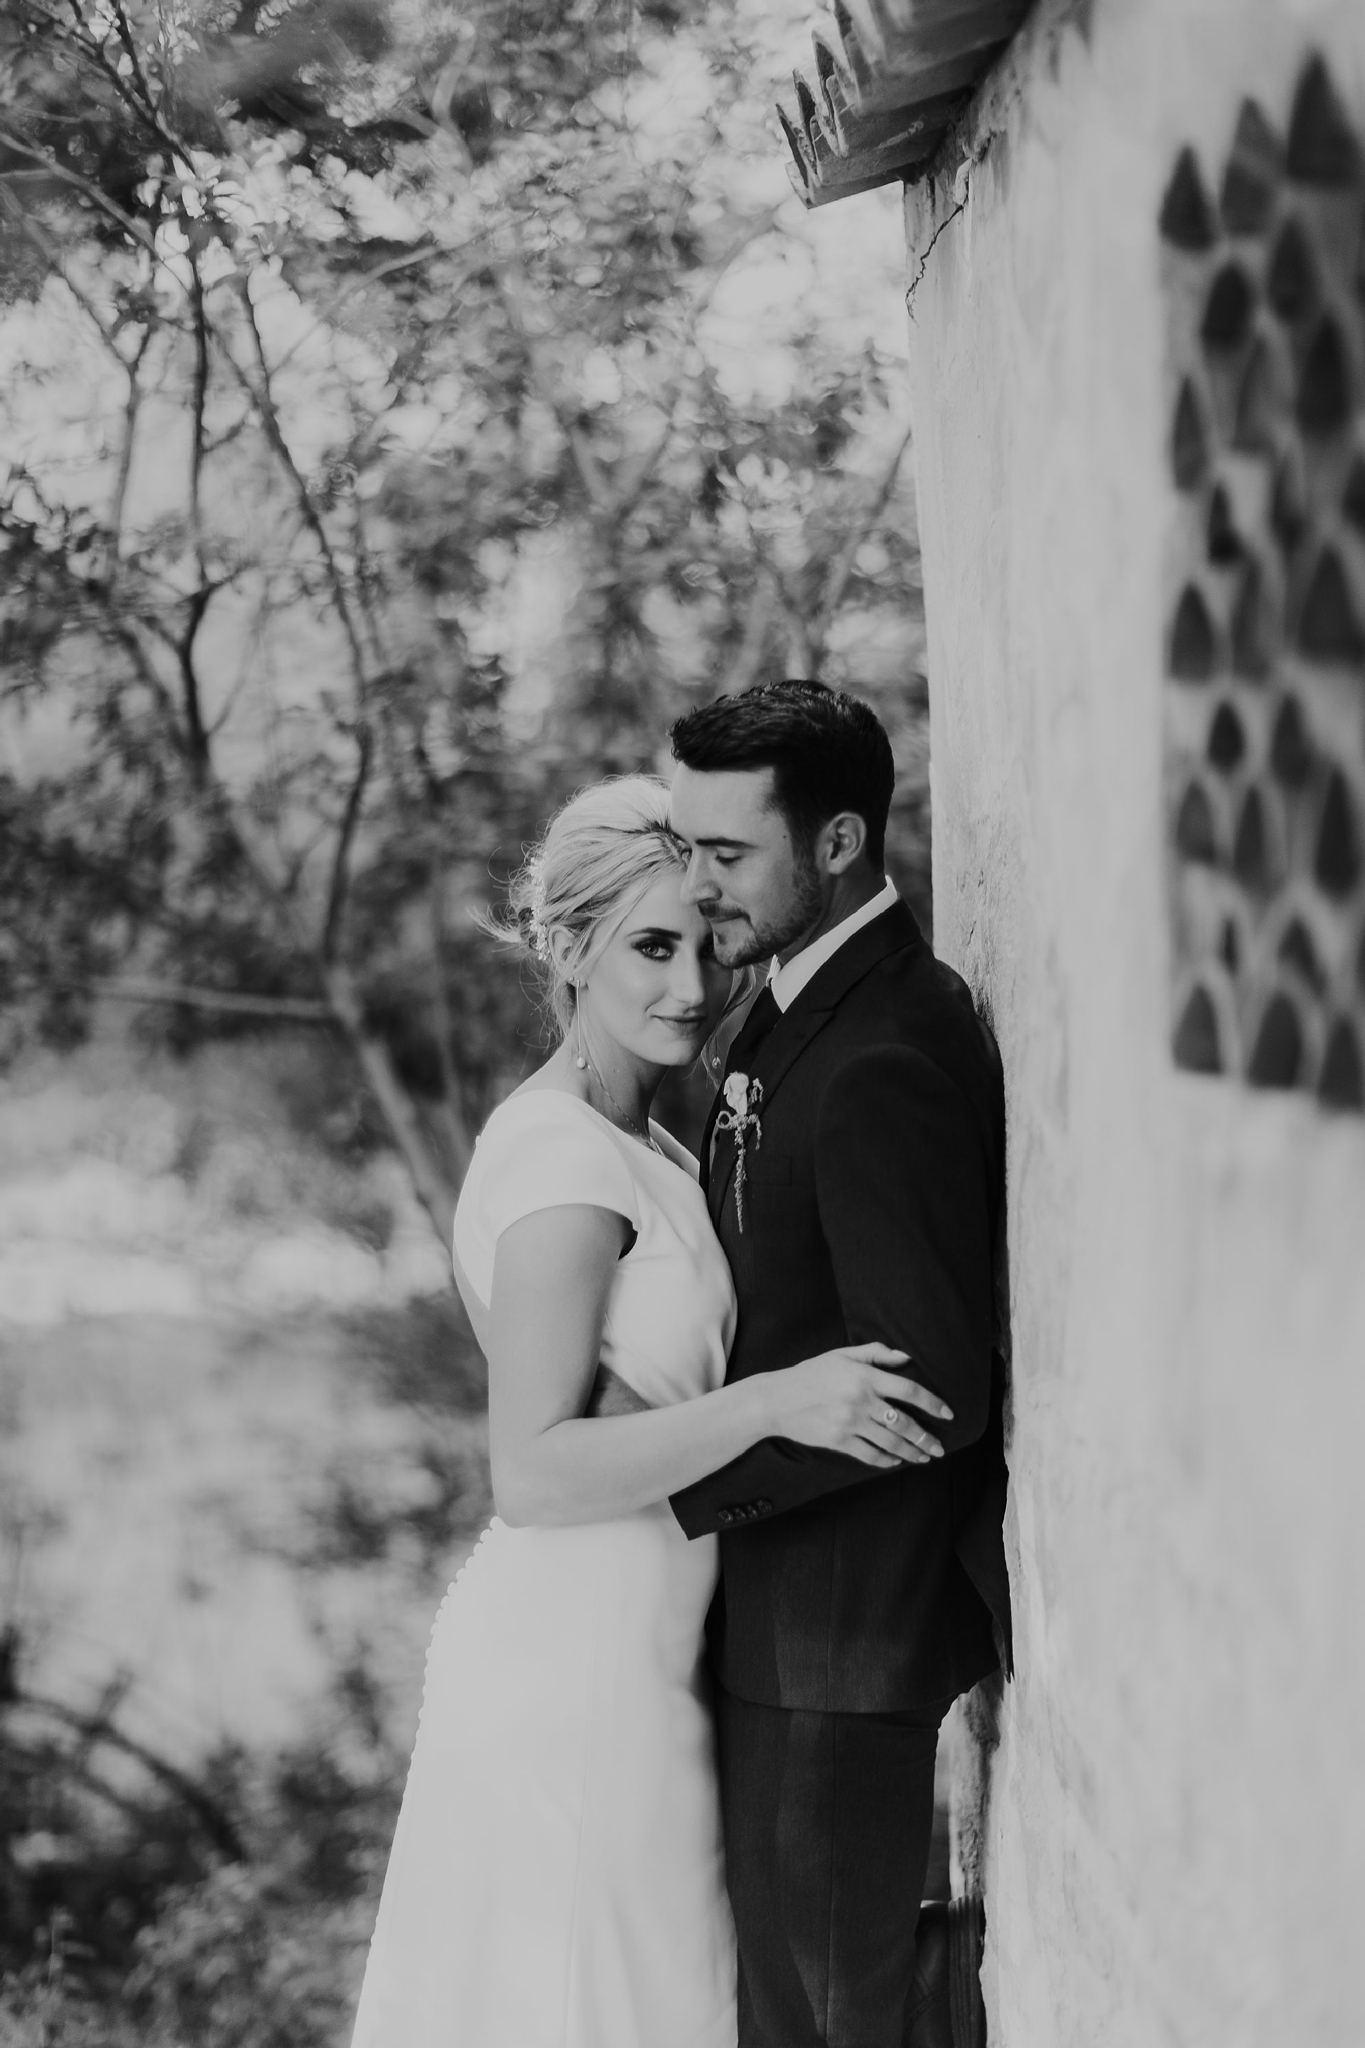 Alicia+lucia+photography+-+albuquerque+wedding+photographer+-+santa+fe+wedding+photography+-+new+mexico+wedding+photographer+-+new+mexico+wedding+-+ruidoso+wedding+-+southern+new+mexico+wedding+-+san+patricio+wedding+-+spring+wedding_0116.jpg